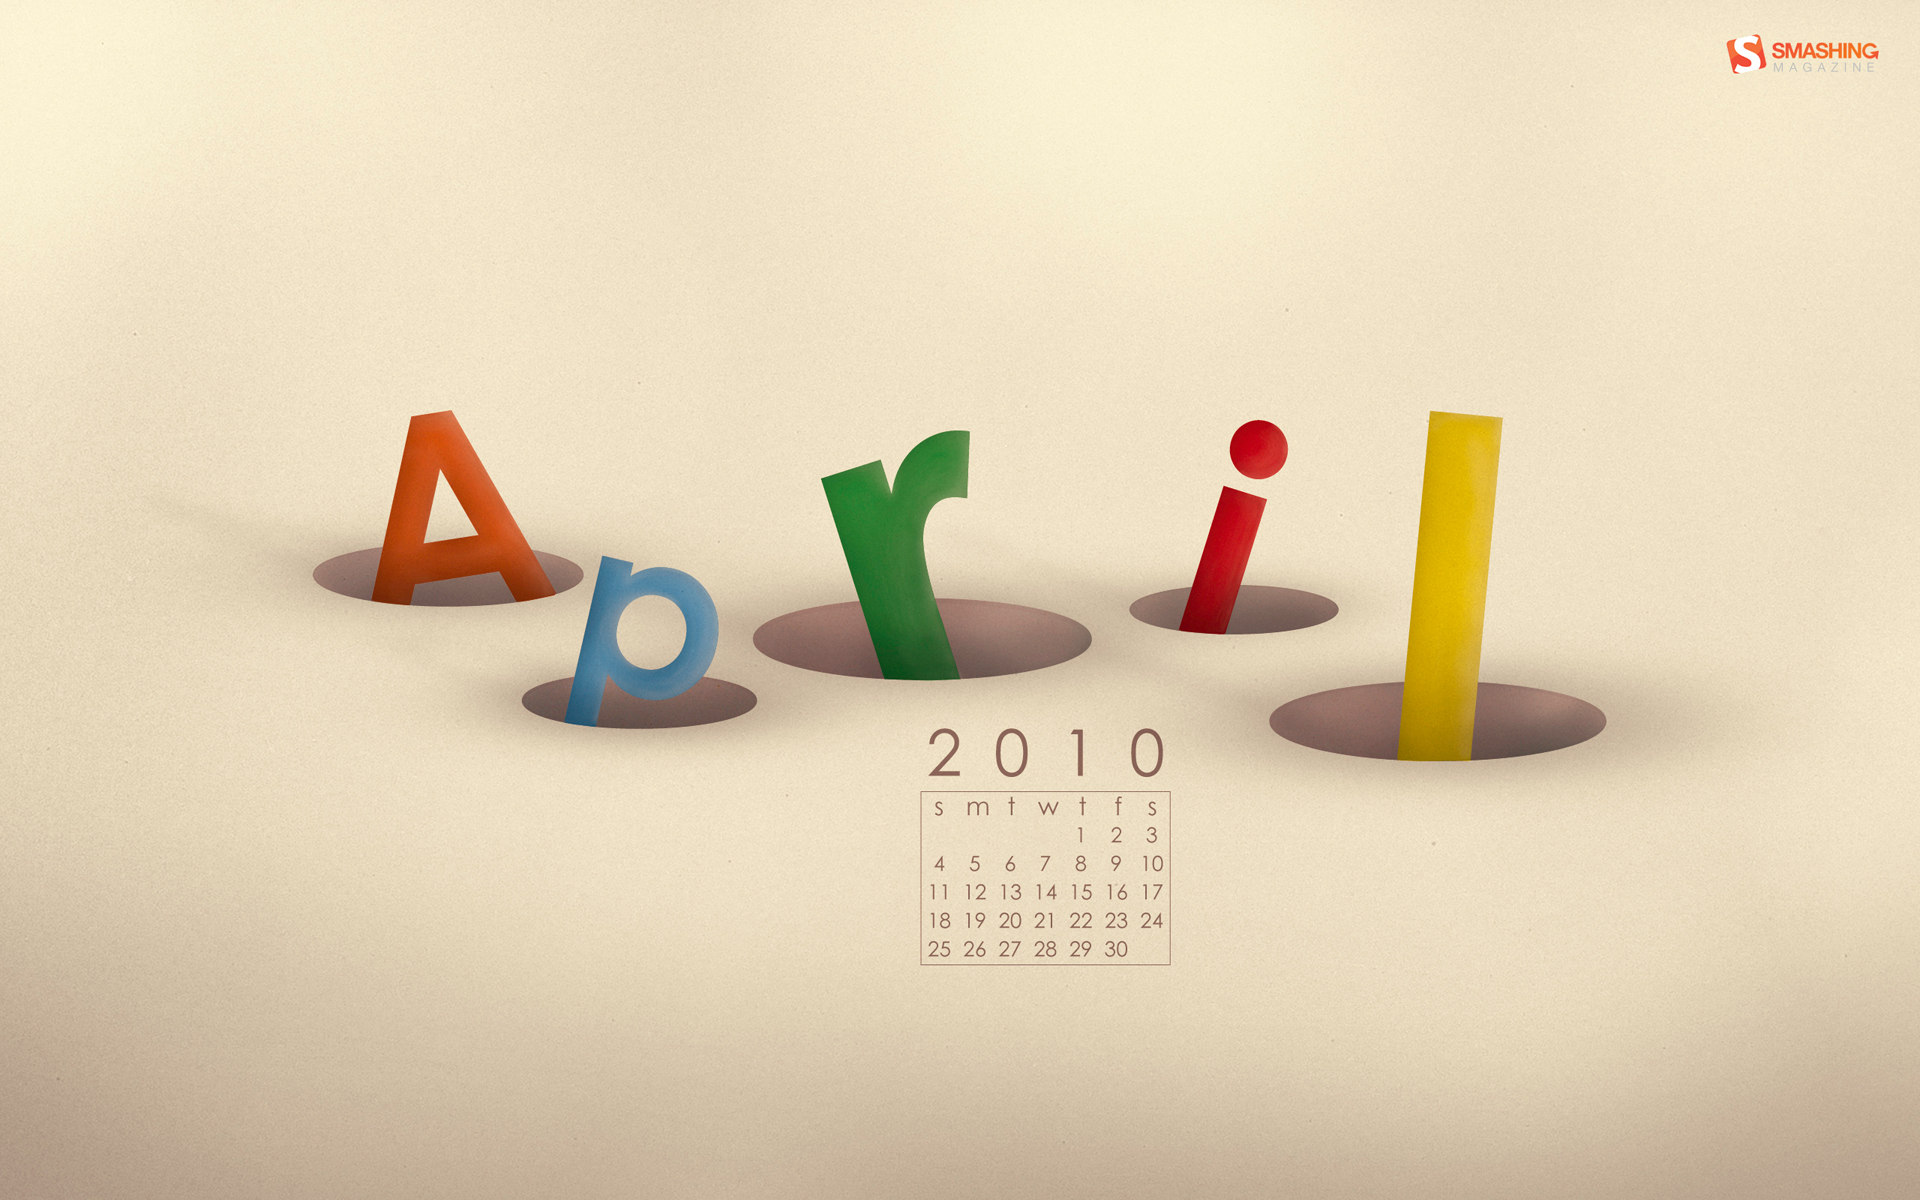 Calendar Wallpaper for April 4989